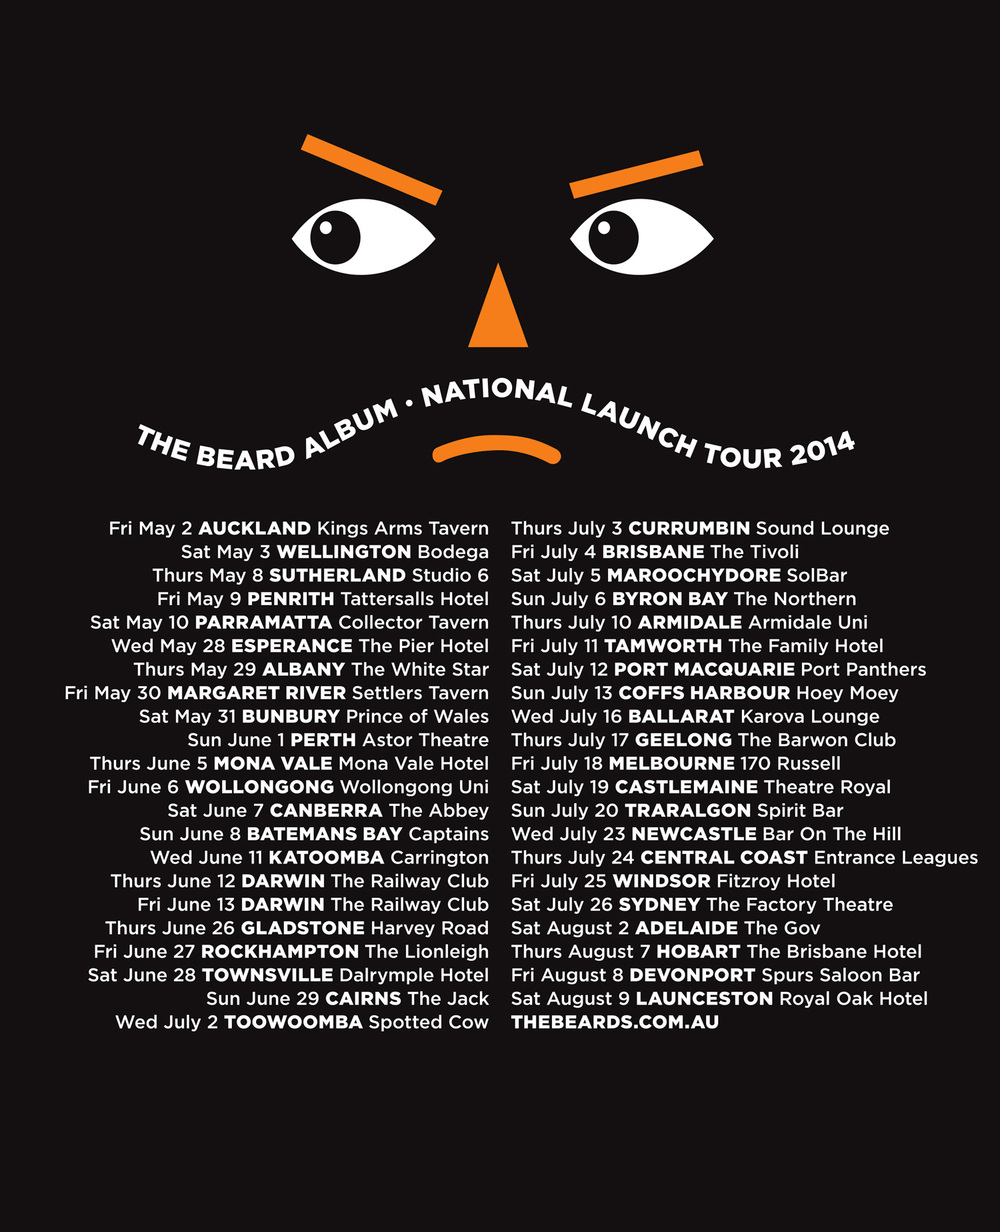 national-launch-tour-the-beards.jpg